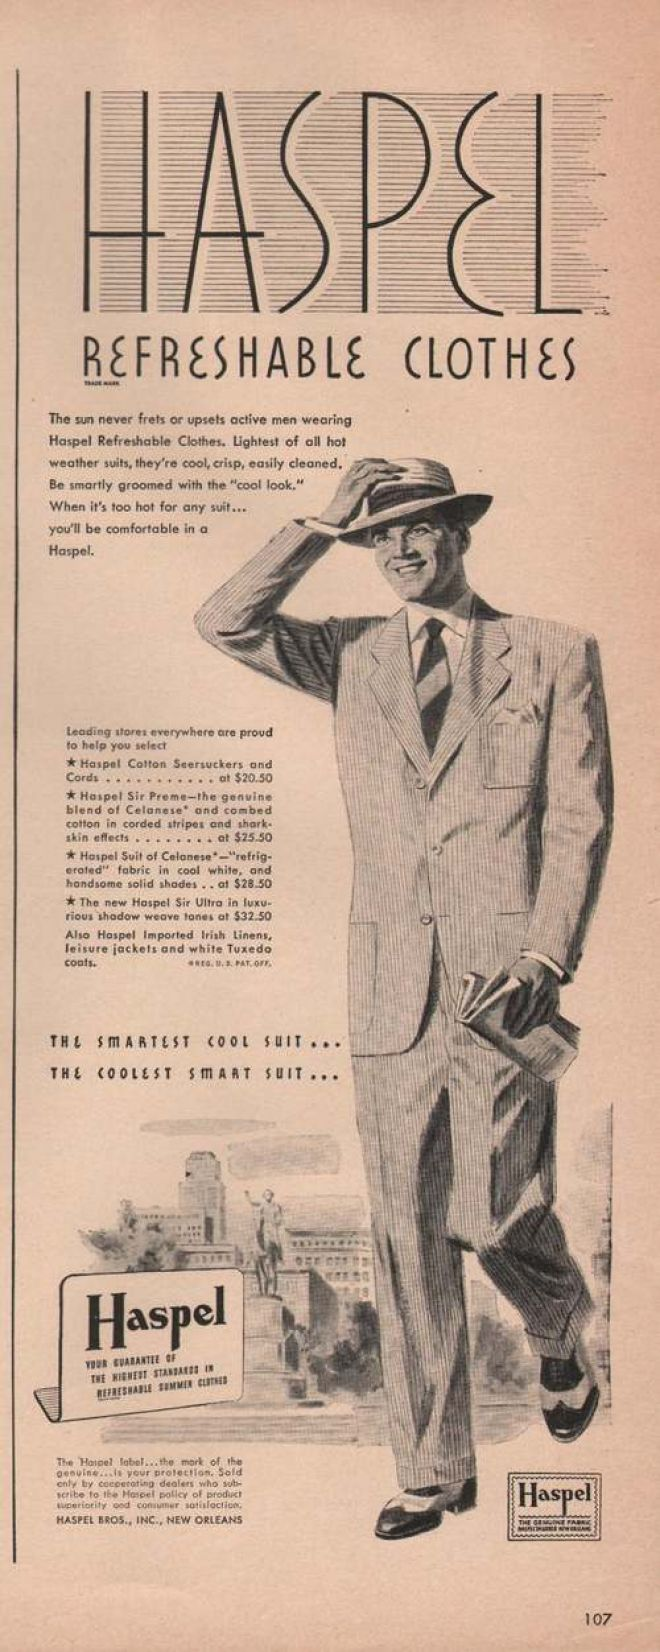 Vintage Clothes Fashion Ads Of The 1940s